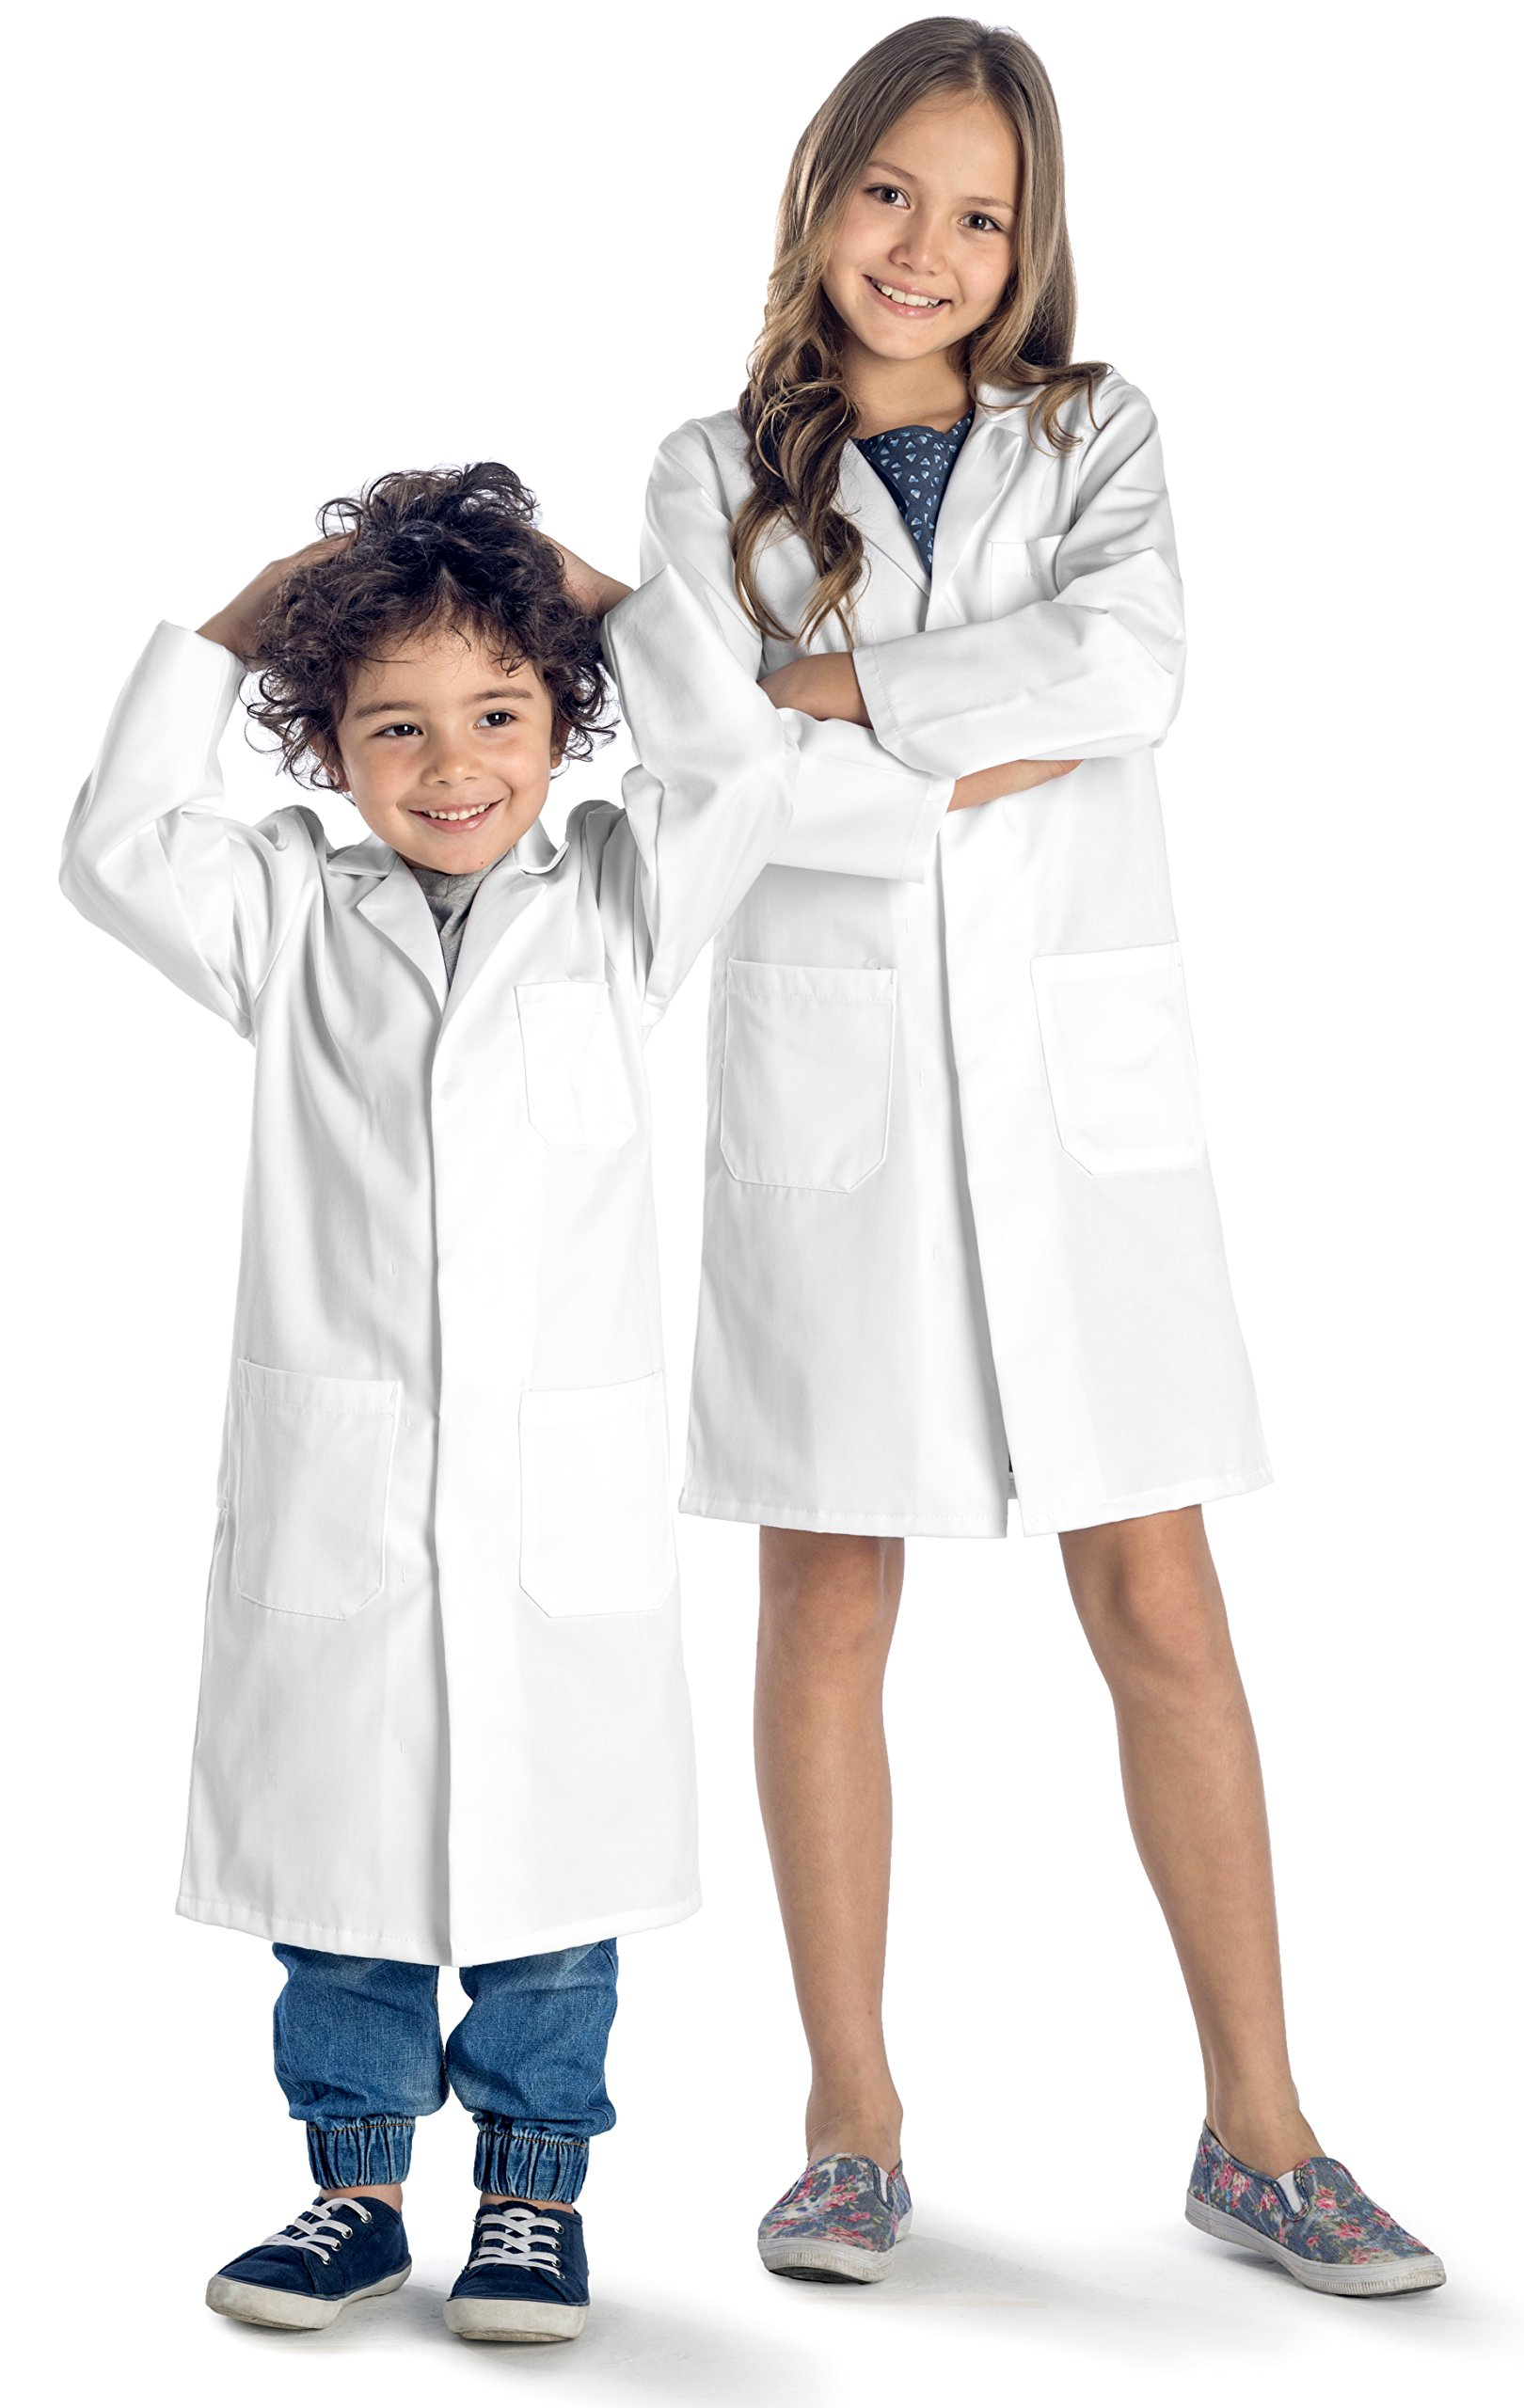 Dr. James Childrens Lab Coat (Safety Snap Buttons) US-05-10/12